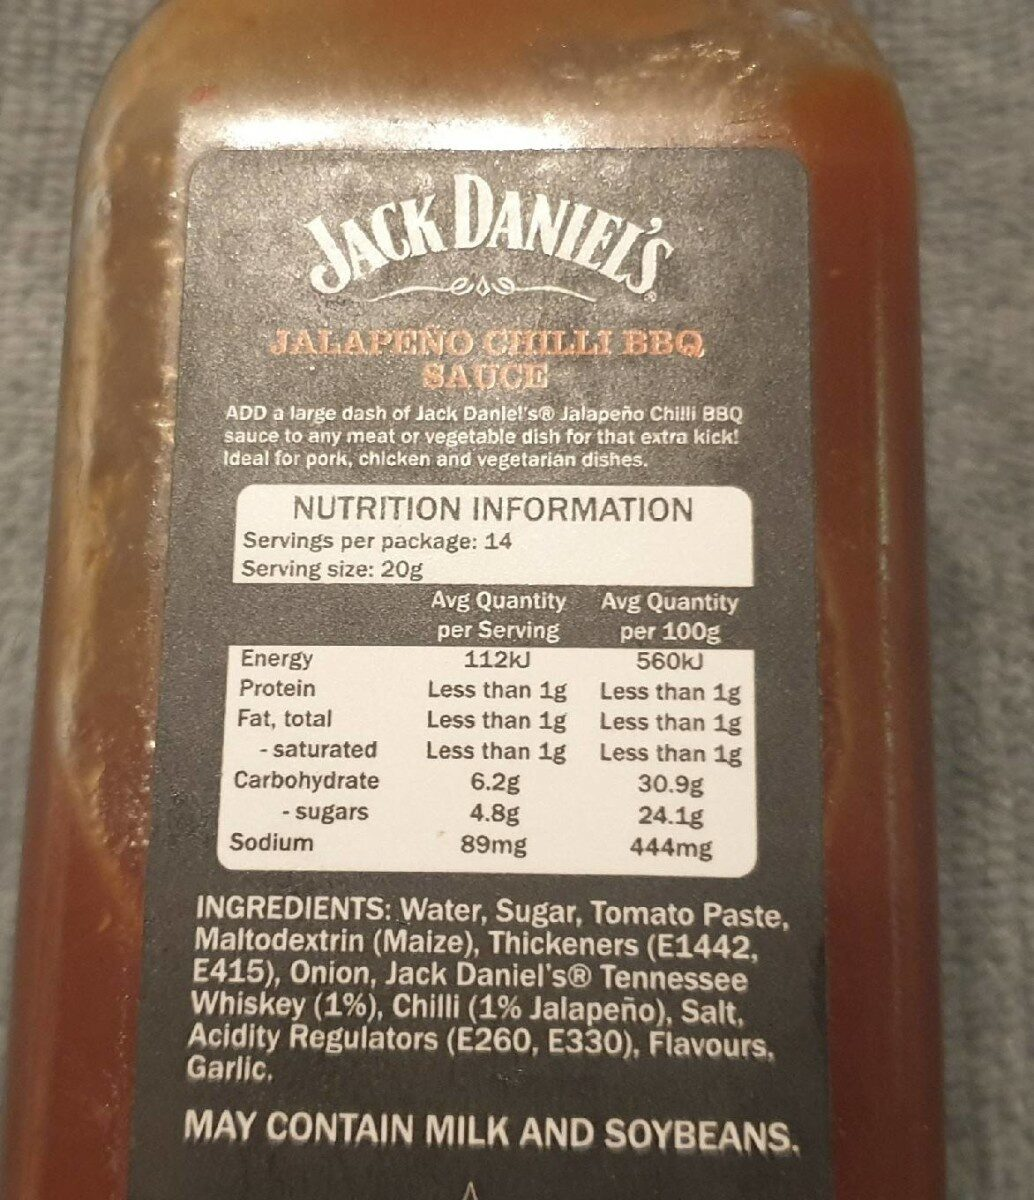 Tennessee Style Barbecue Sauce Jalapeño Chilli BBQ - Nutrition facts - en